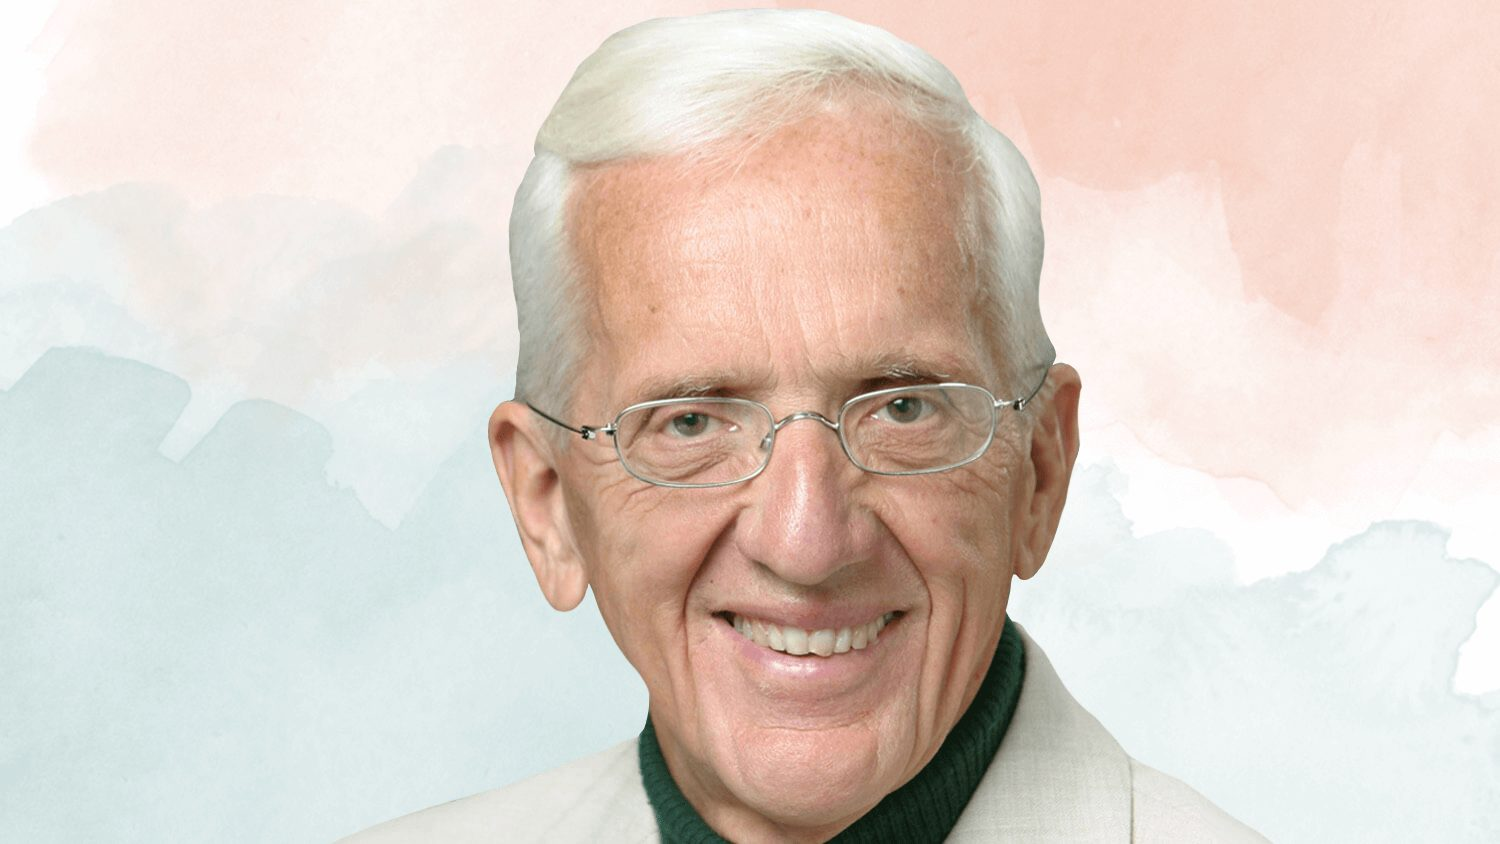 Vegan Doctor T. Colin Campbell Just Turned 85